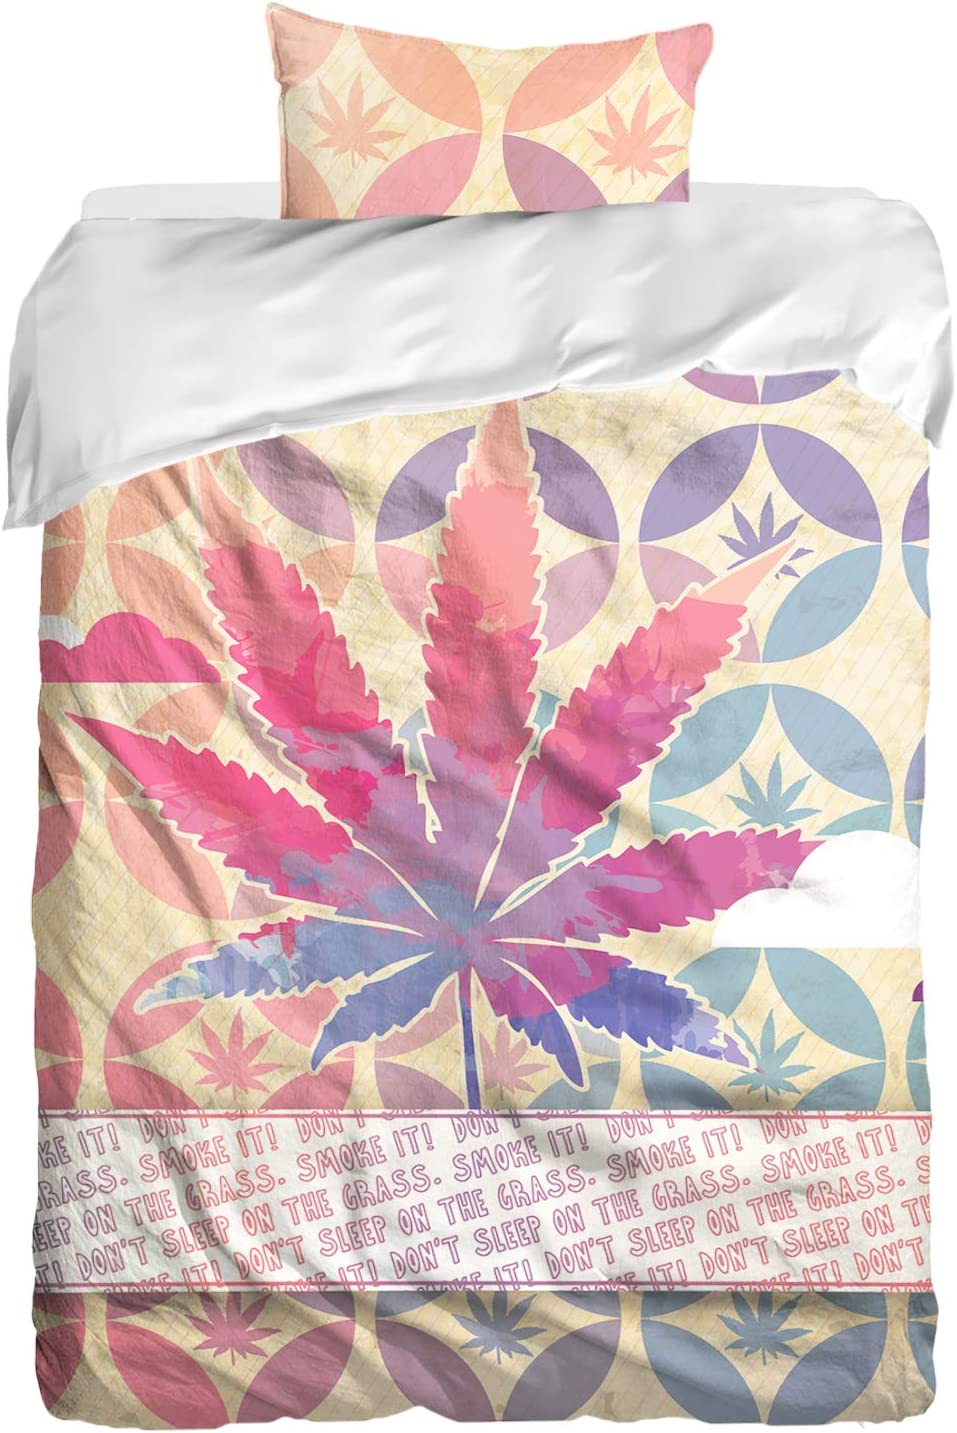 "Cool Bedding Colorful Marijuana Bedding Set by Marijuana Upgrade to a Comforter. Weed Cover. Marijuana Leaf. Mary Jane Duvet Cover Set. Pot Head Beddings (Single 55""x80"")"